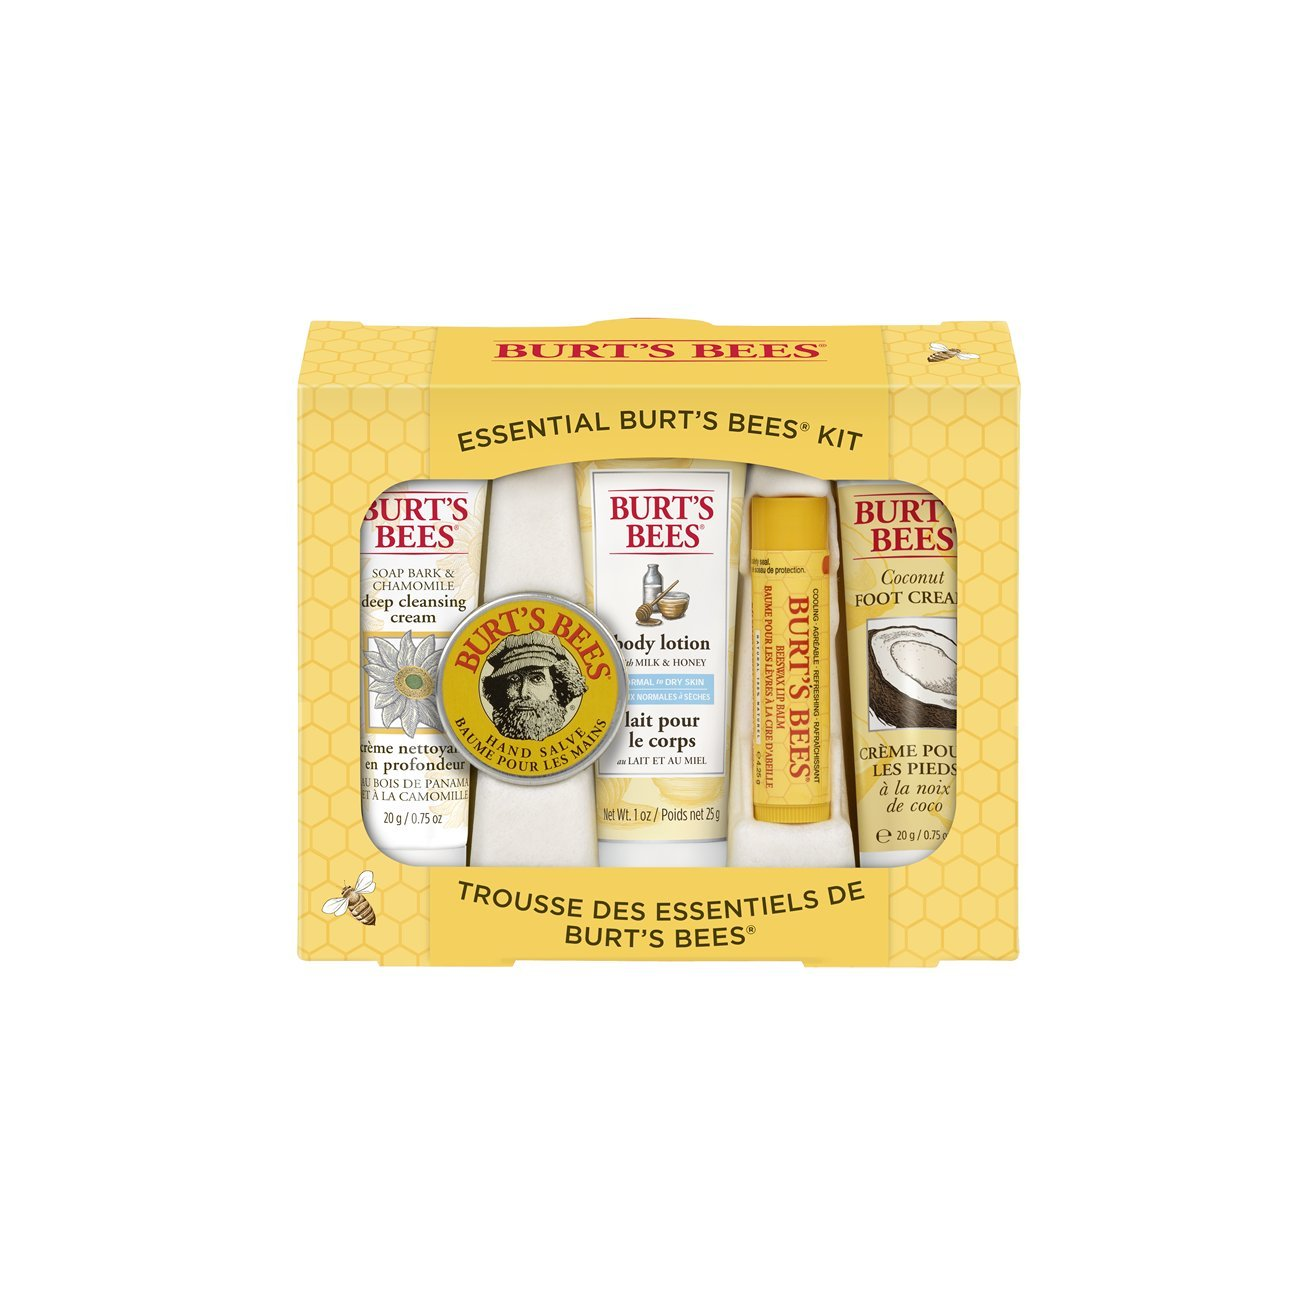 Burt's Bees Essential Everyday Beauty Gift Set, 5 Travel Size Products - Deep Cleansing Cream, Hand Salve, Body Lotion, Foot Cream and Lip Balm Burt' s Bees 00916-24